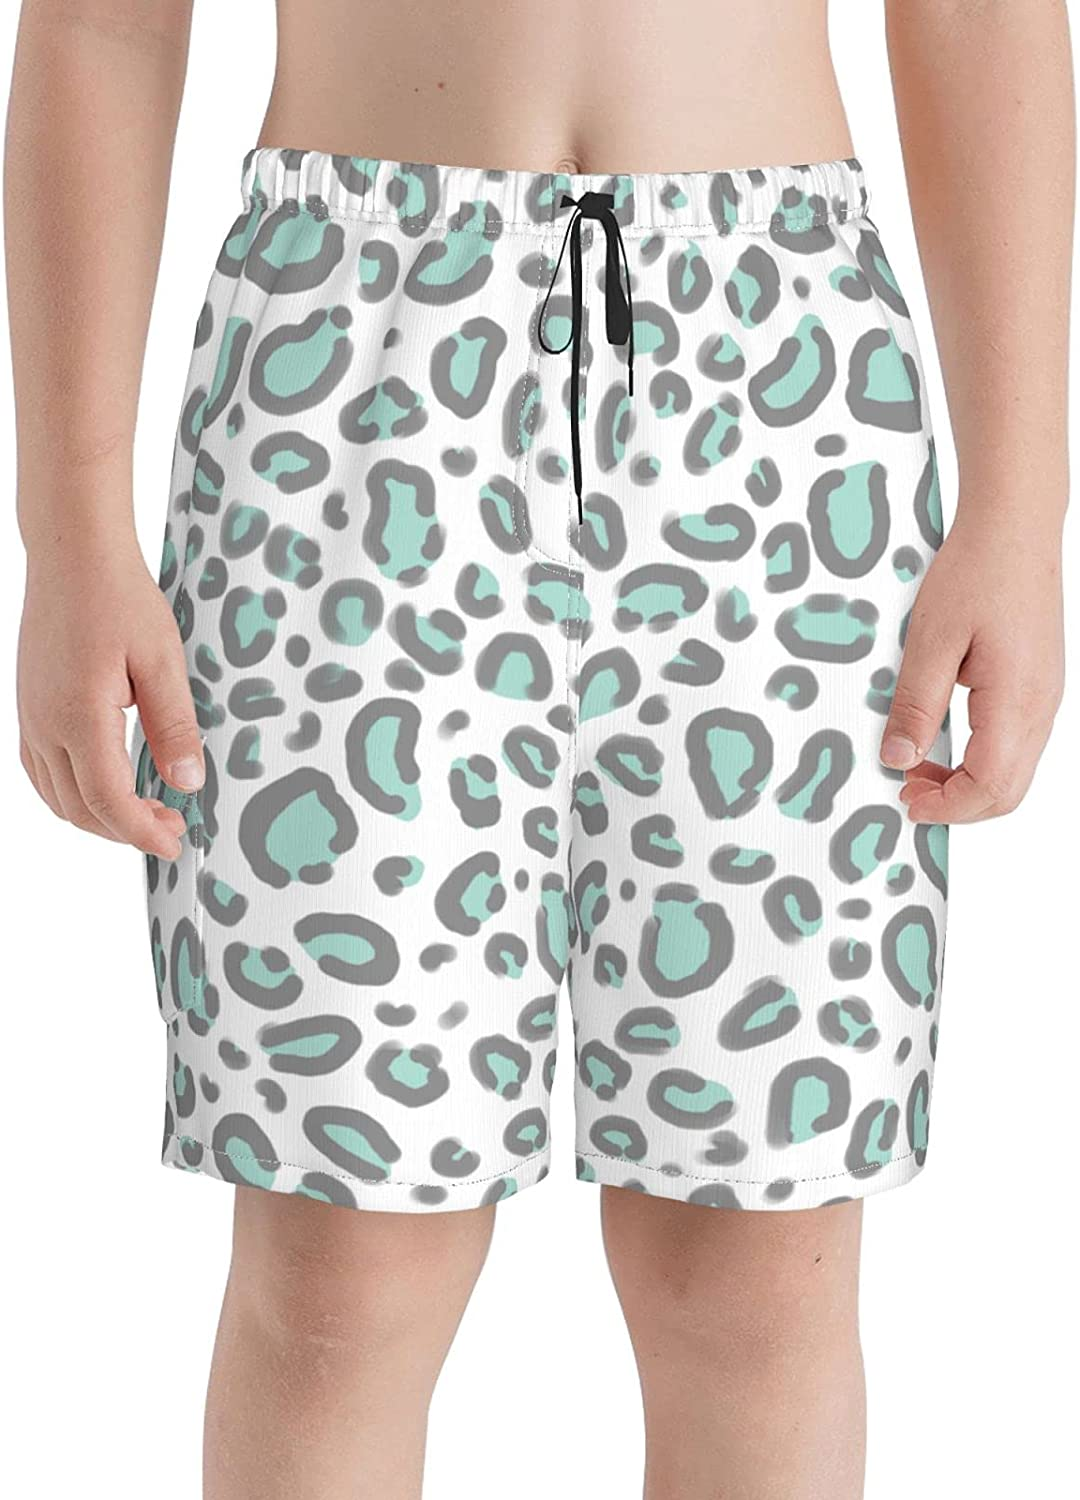 Daisy Circle Blue On Cream Boys Teens Swim Trunks Quick Dry Surfing Board Shorts with Mesh Lining